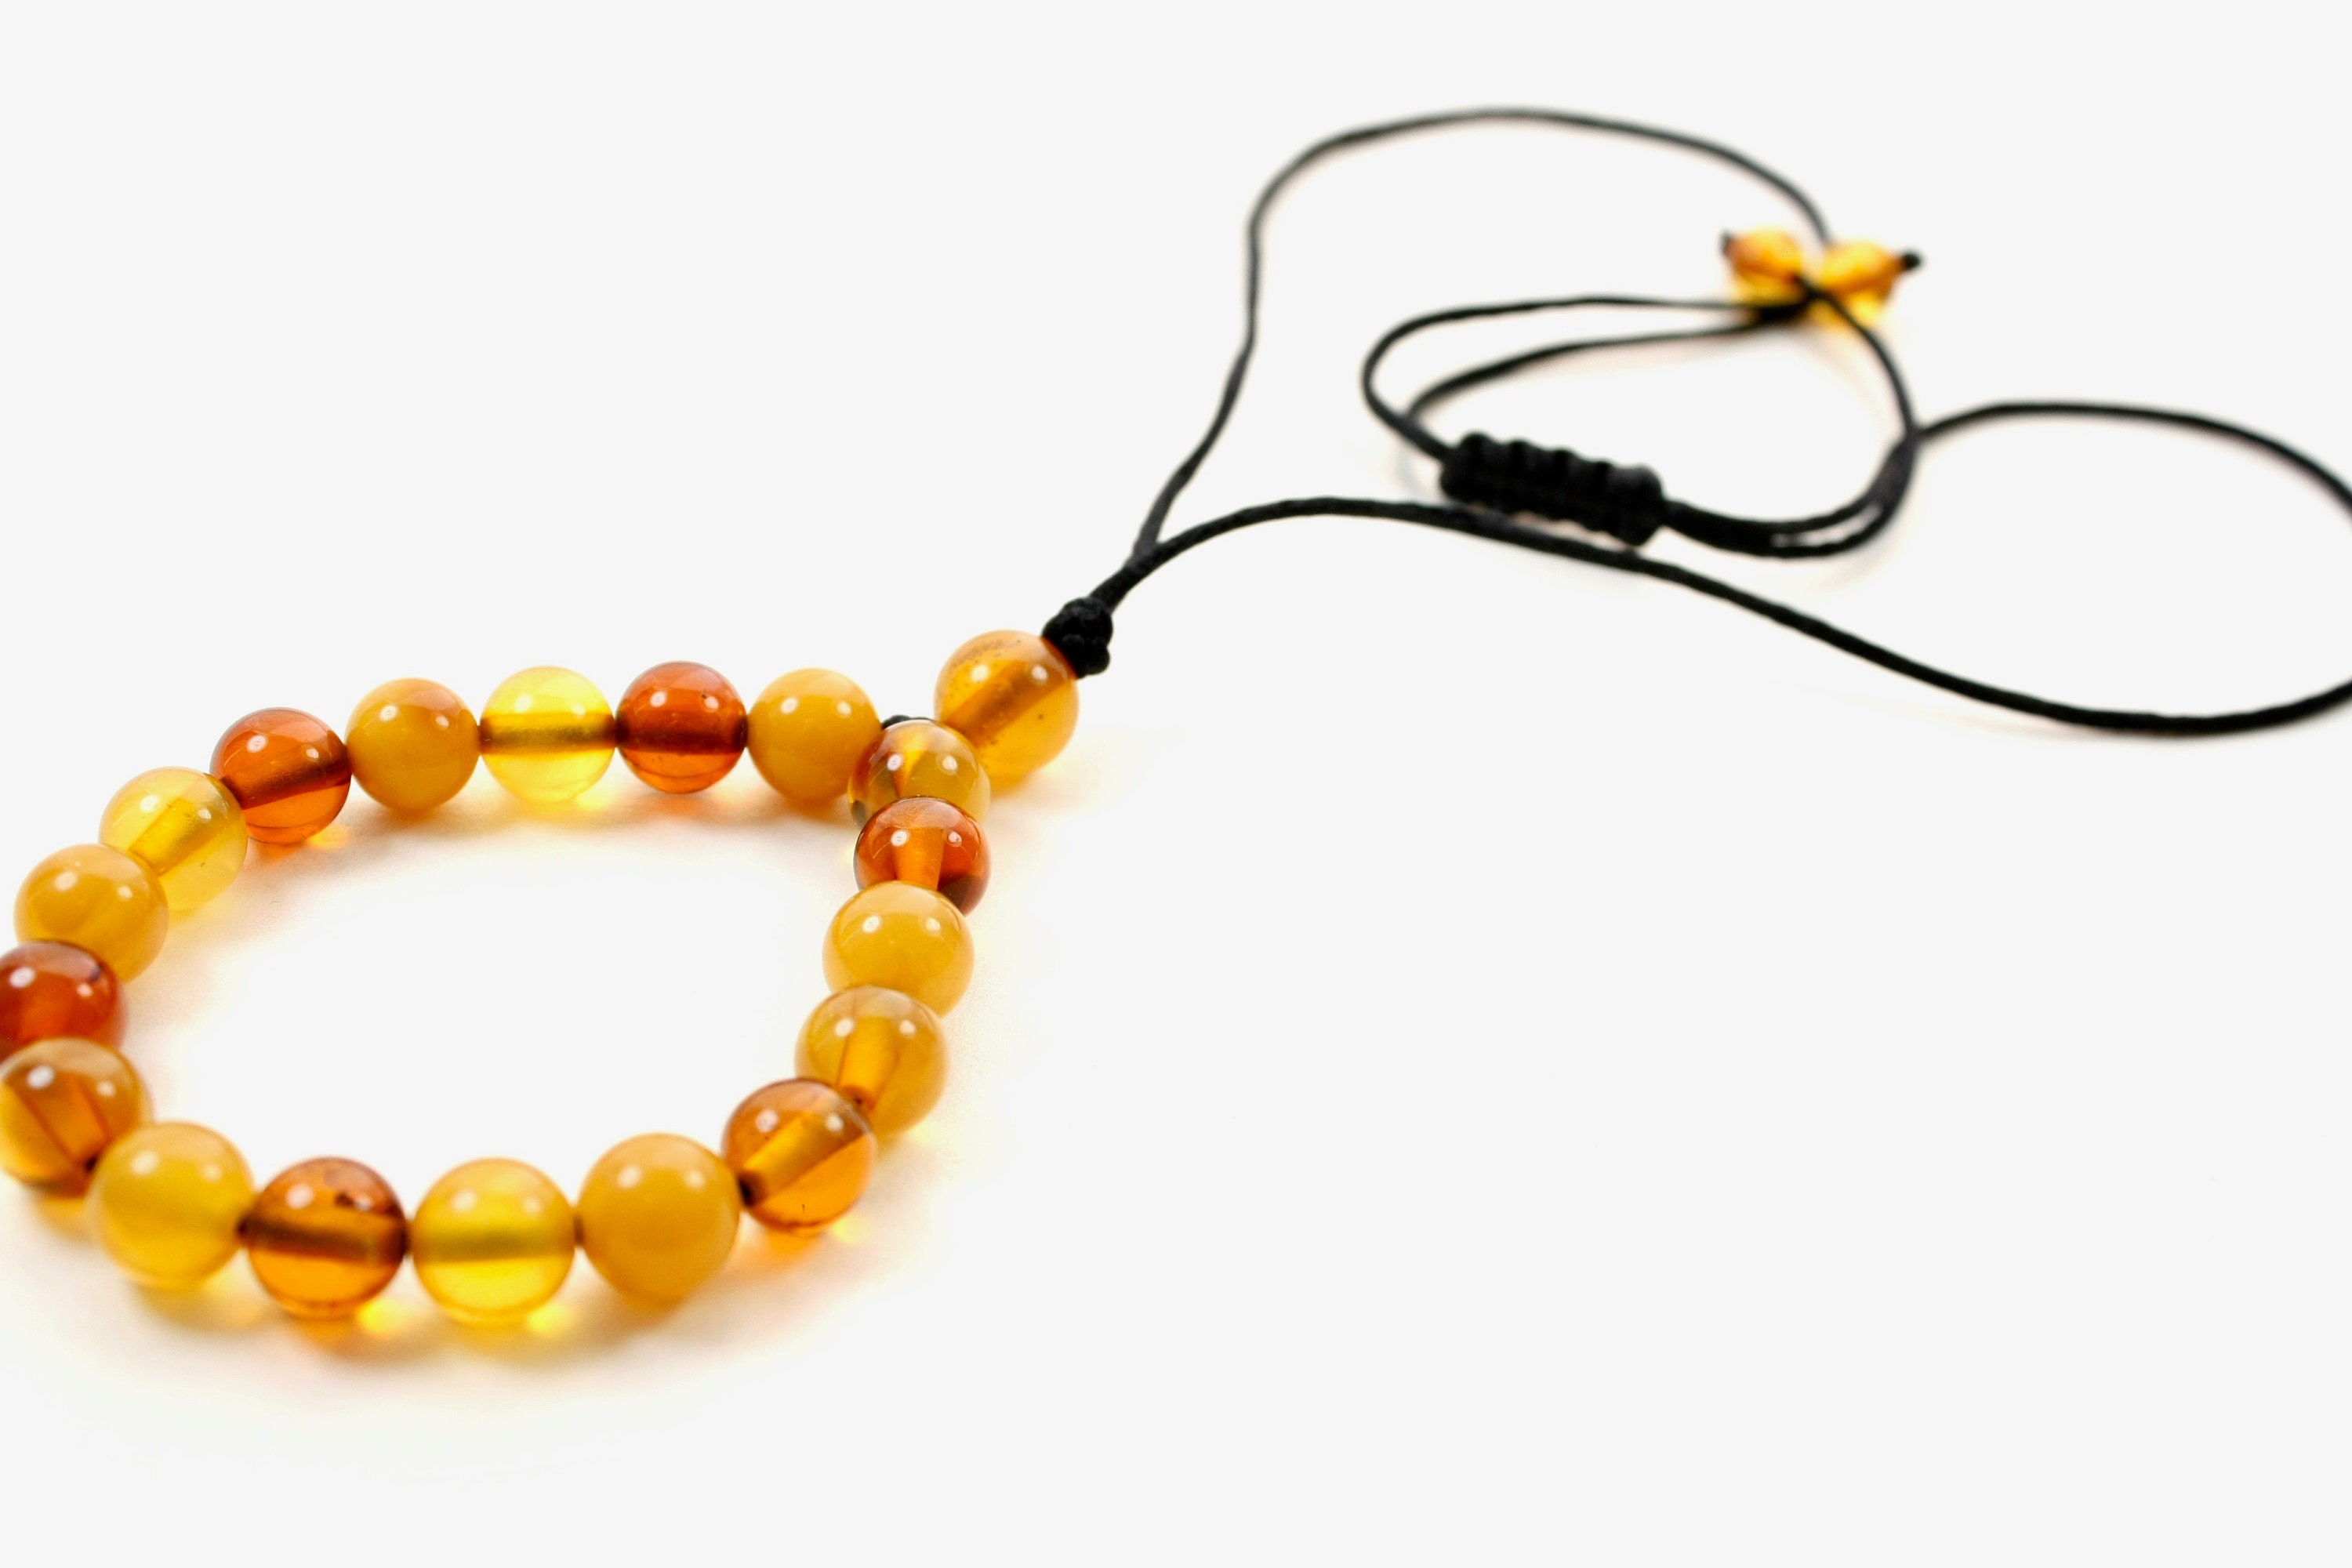 Amber Nursing Necklace The Mother S Love Baltic Amber